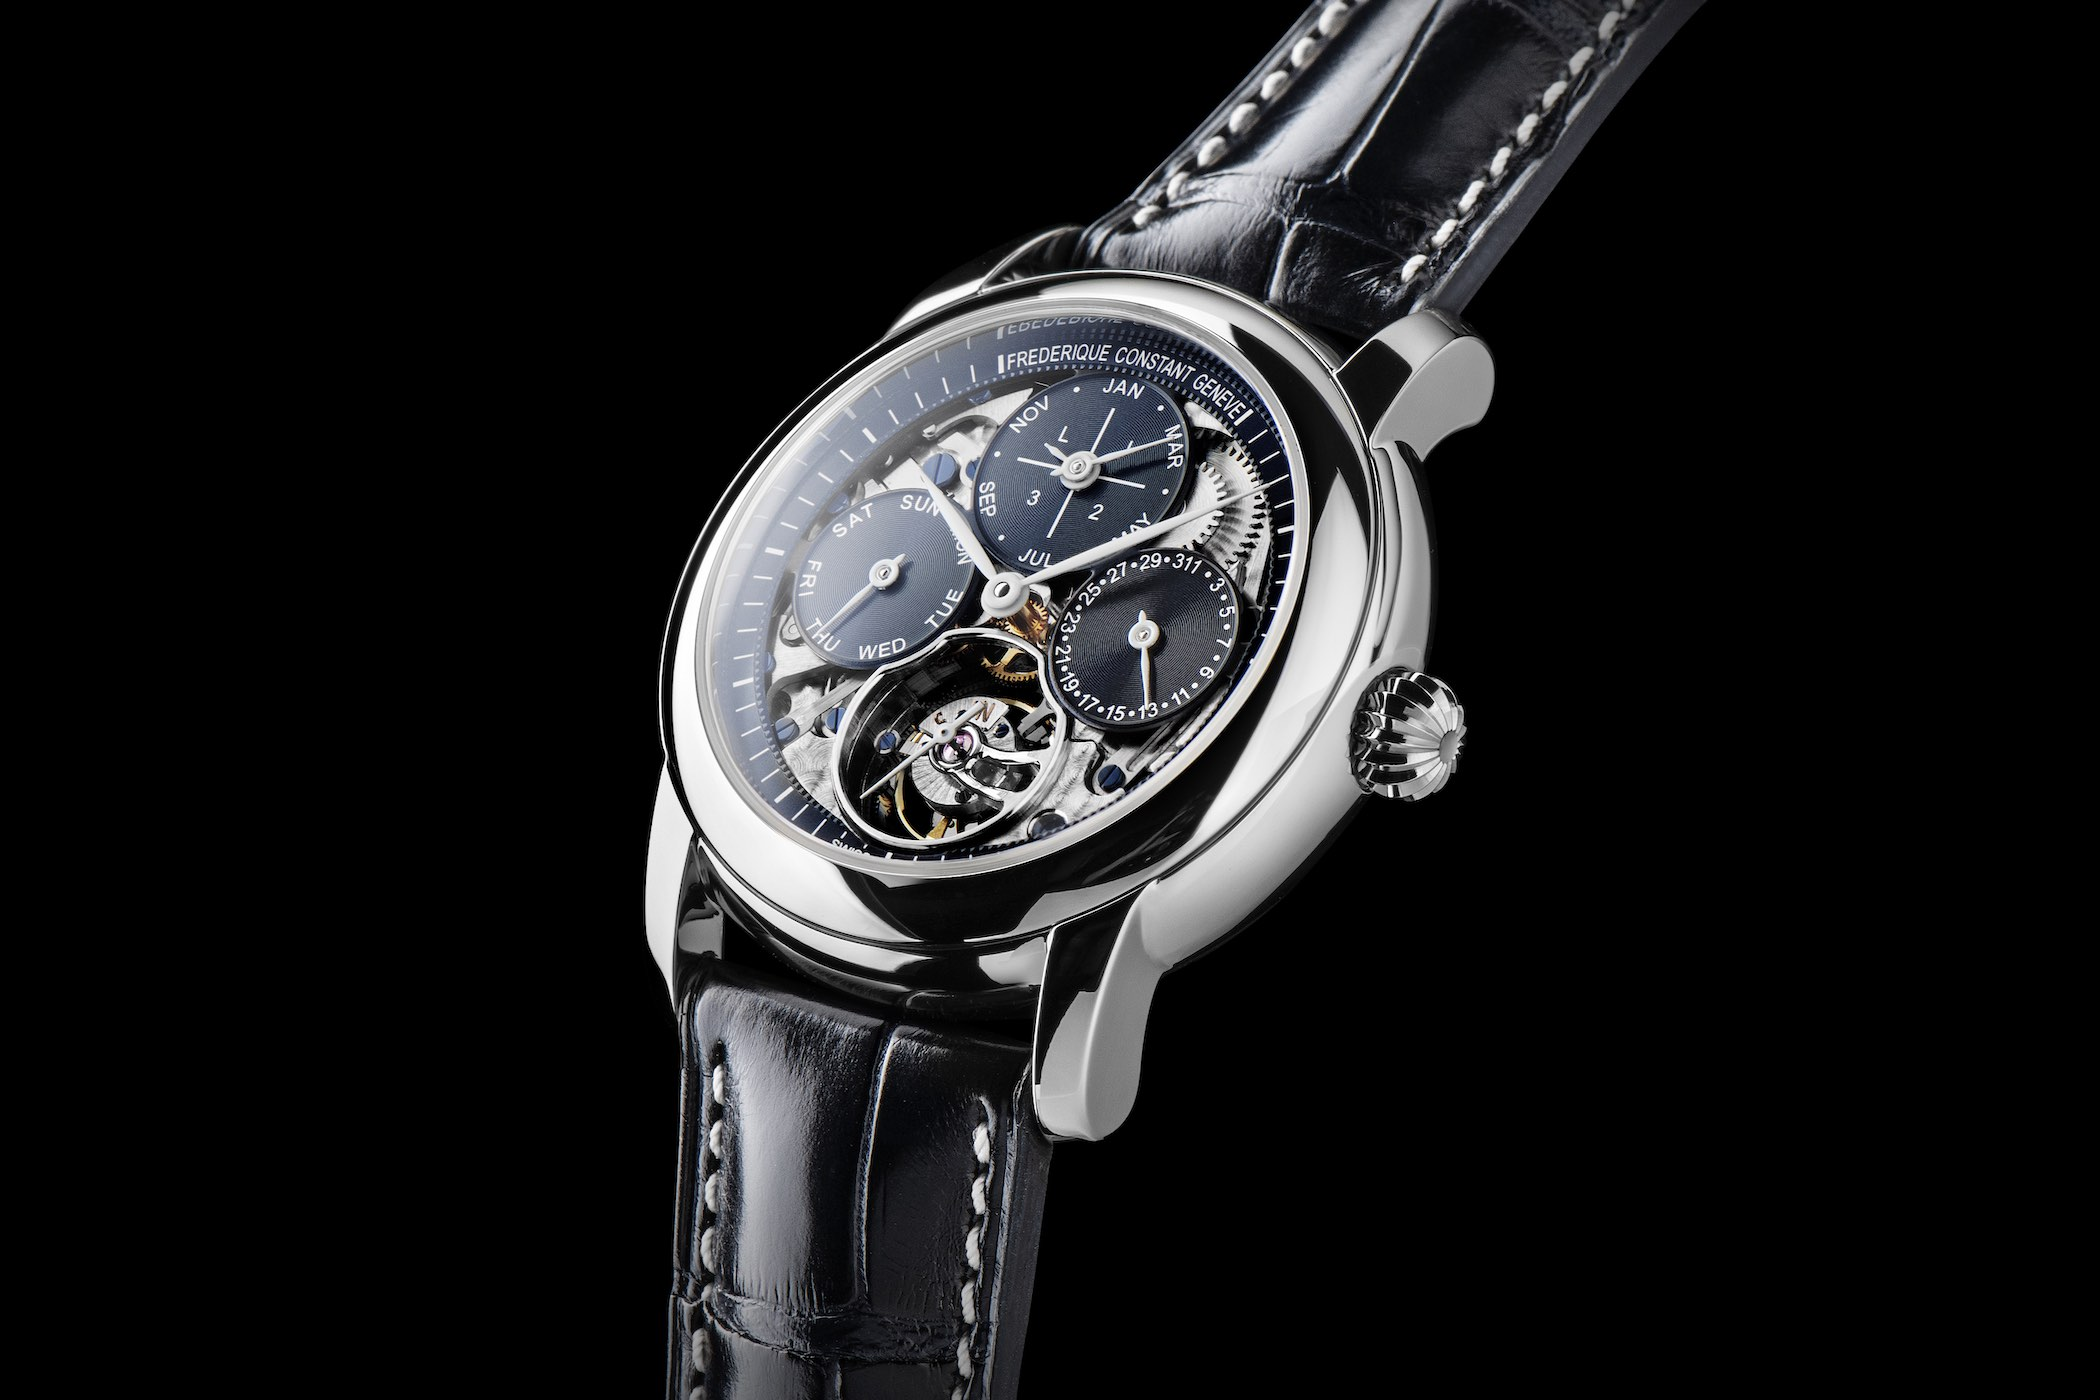 Frederique Constant Tourbillon Perpetual Calendar Manufacture Limited Edition new Manufacture 2019